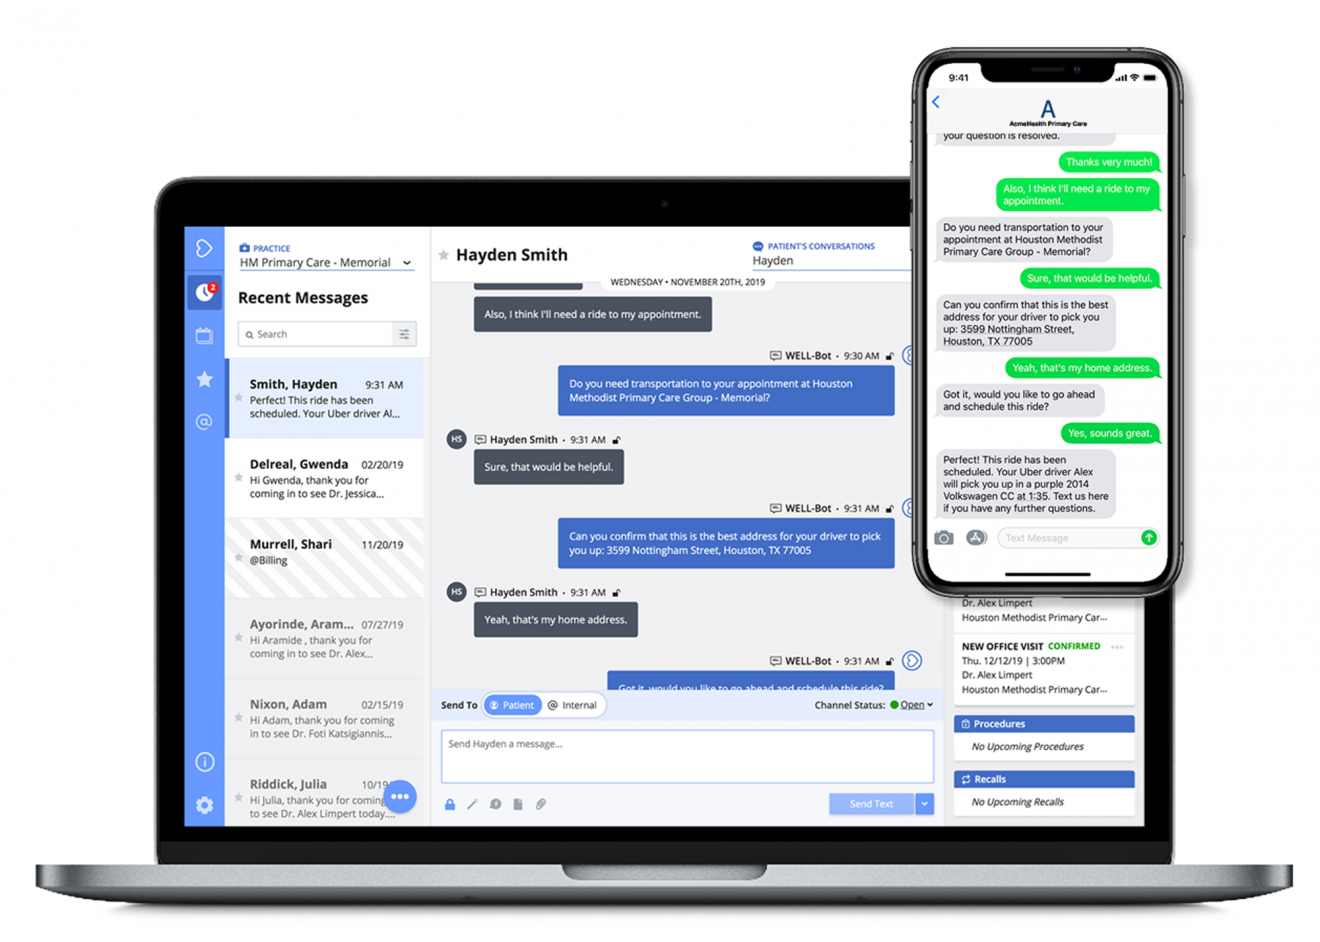 Well Health enables conversations between patients and health care organizations through secure, multilingual messaging.